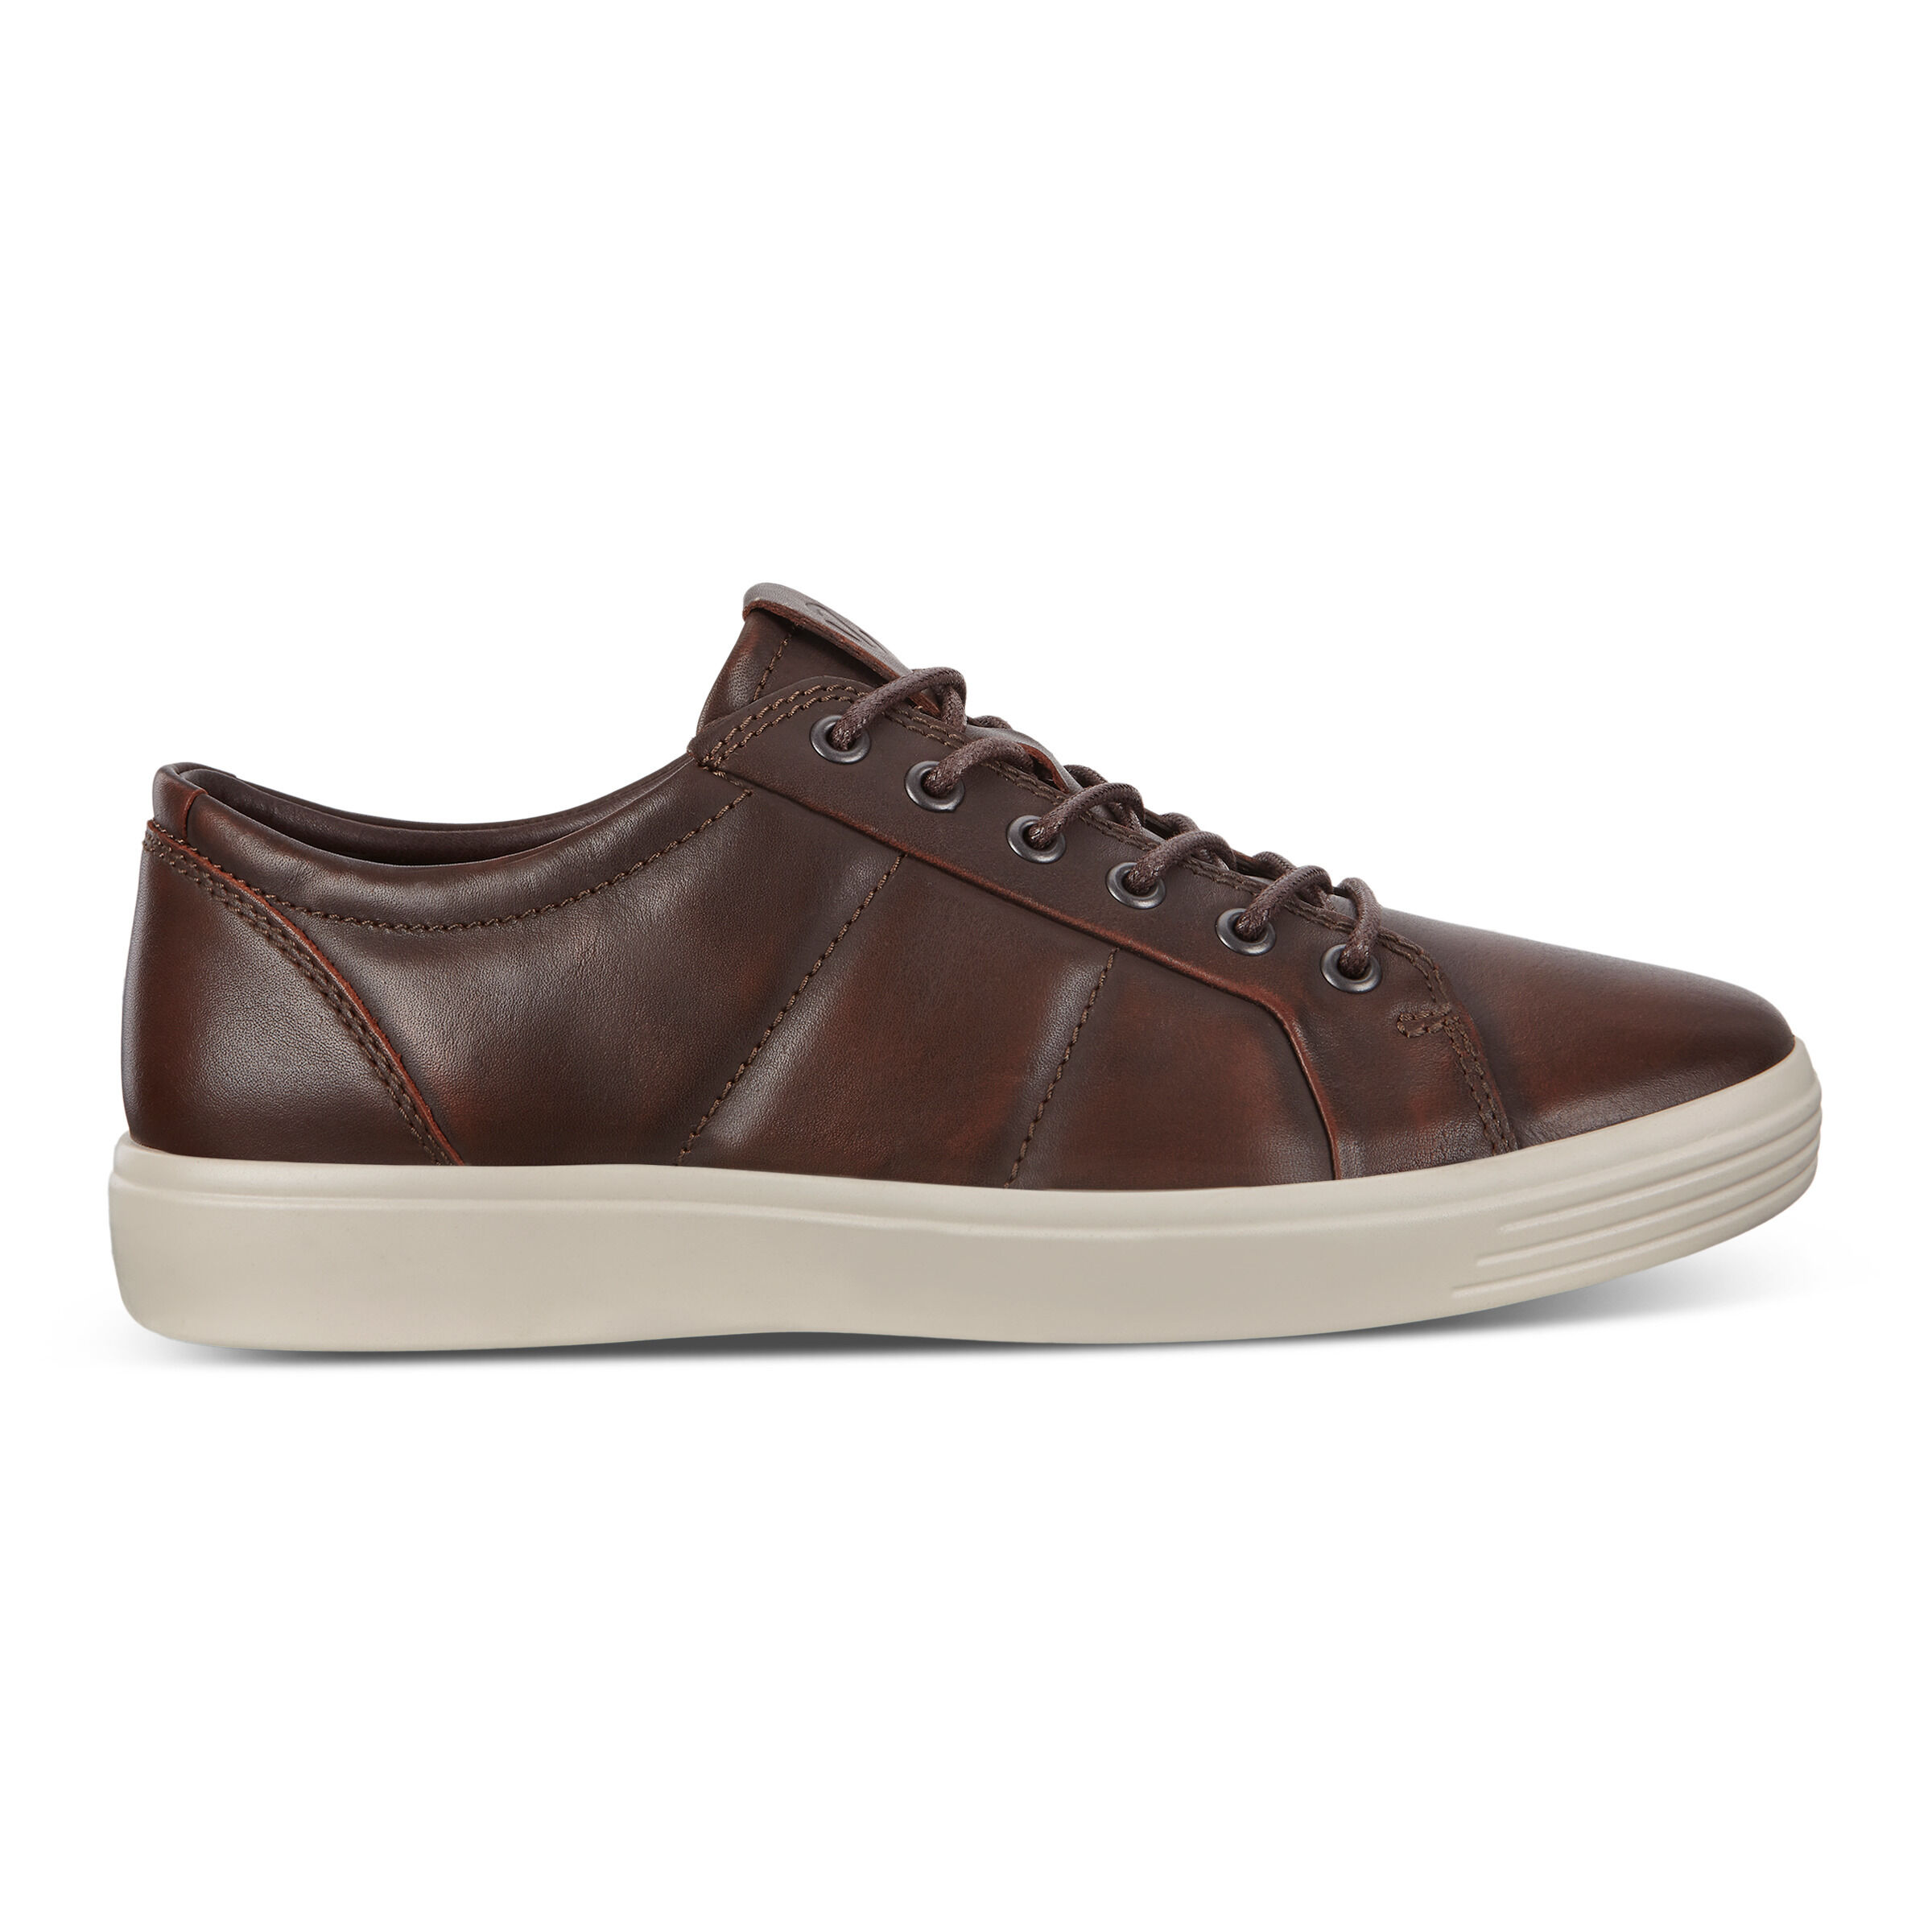 ECCO Soft 7 Mens Padded Leather Sneakers